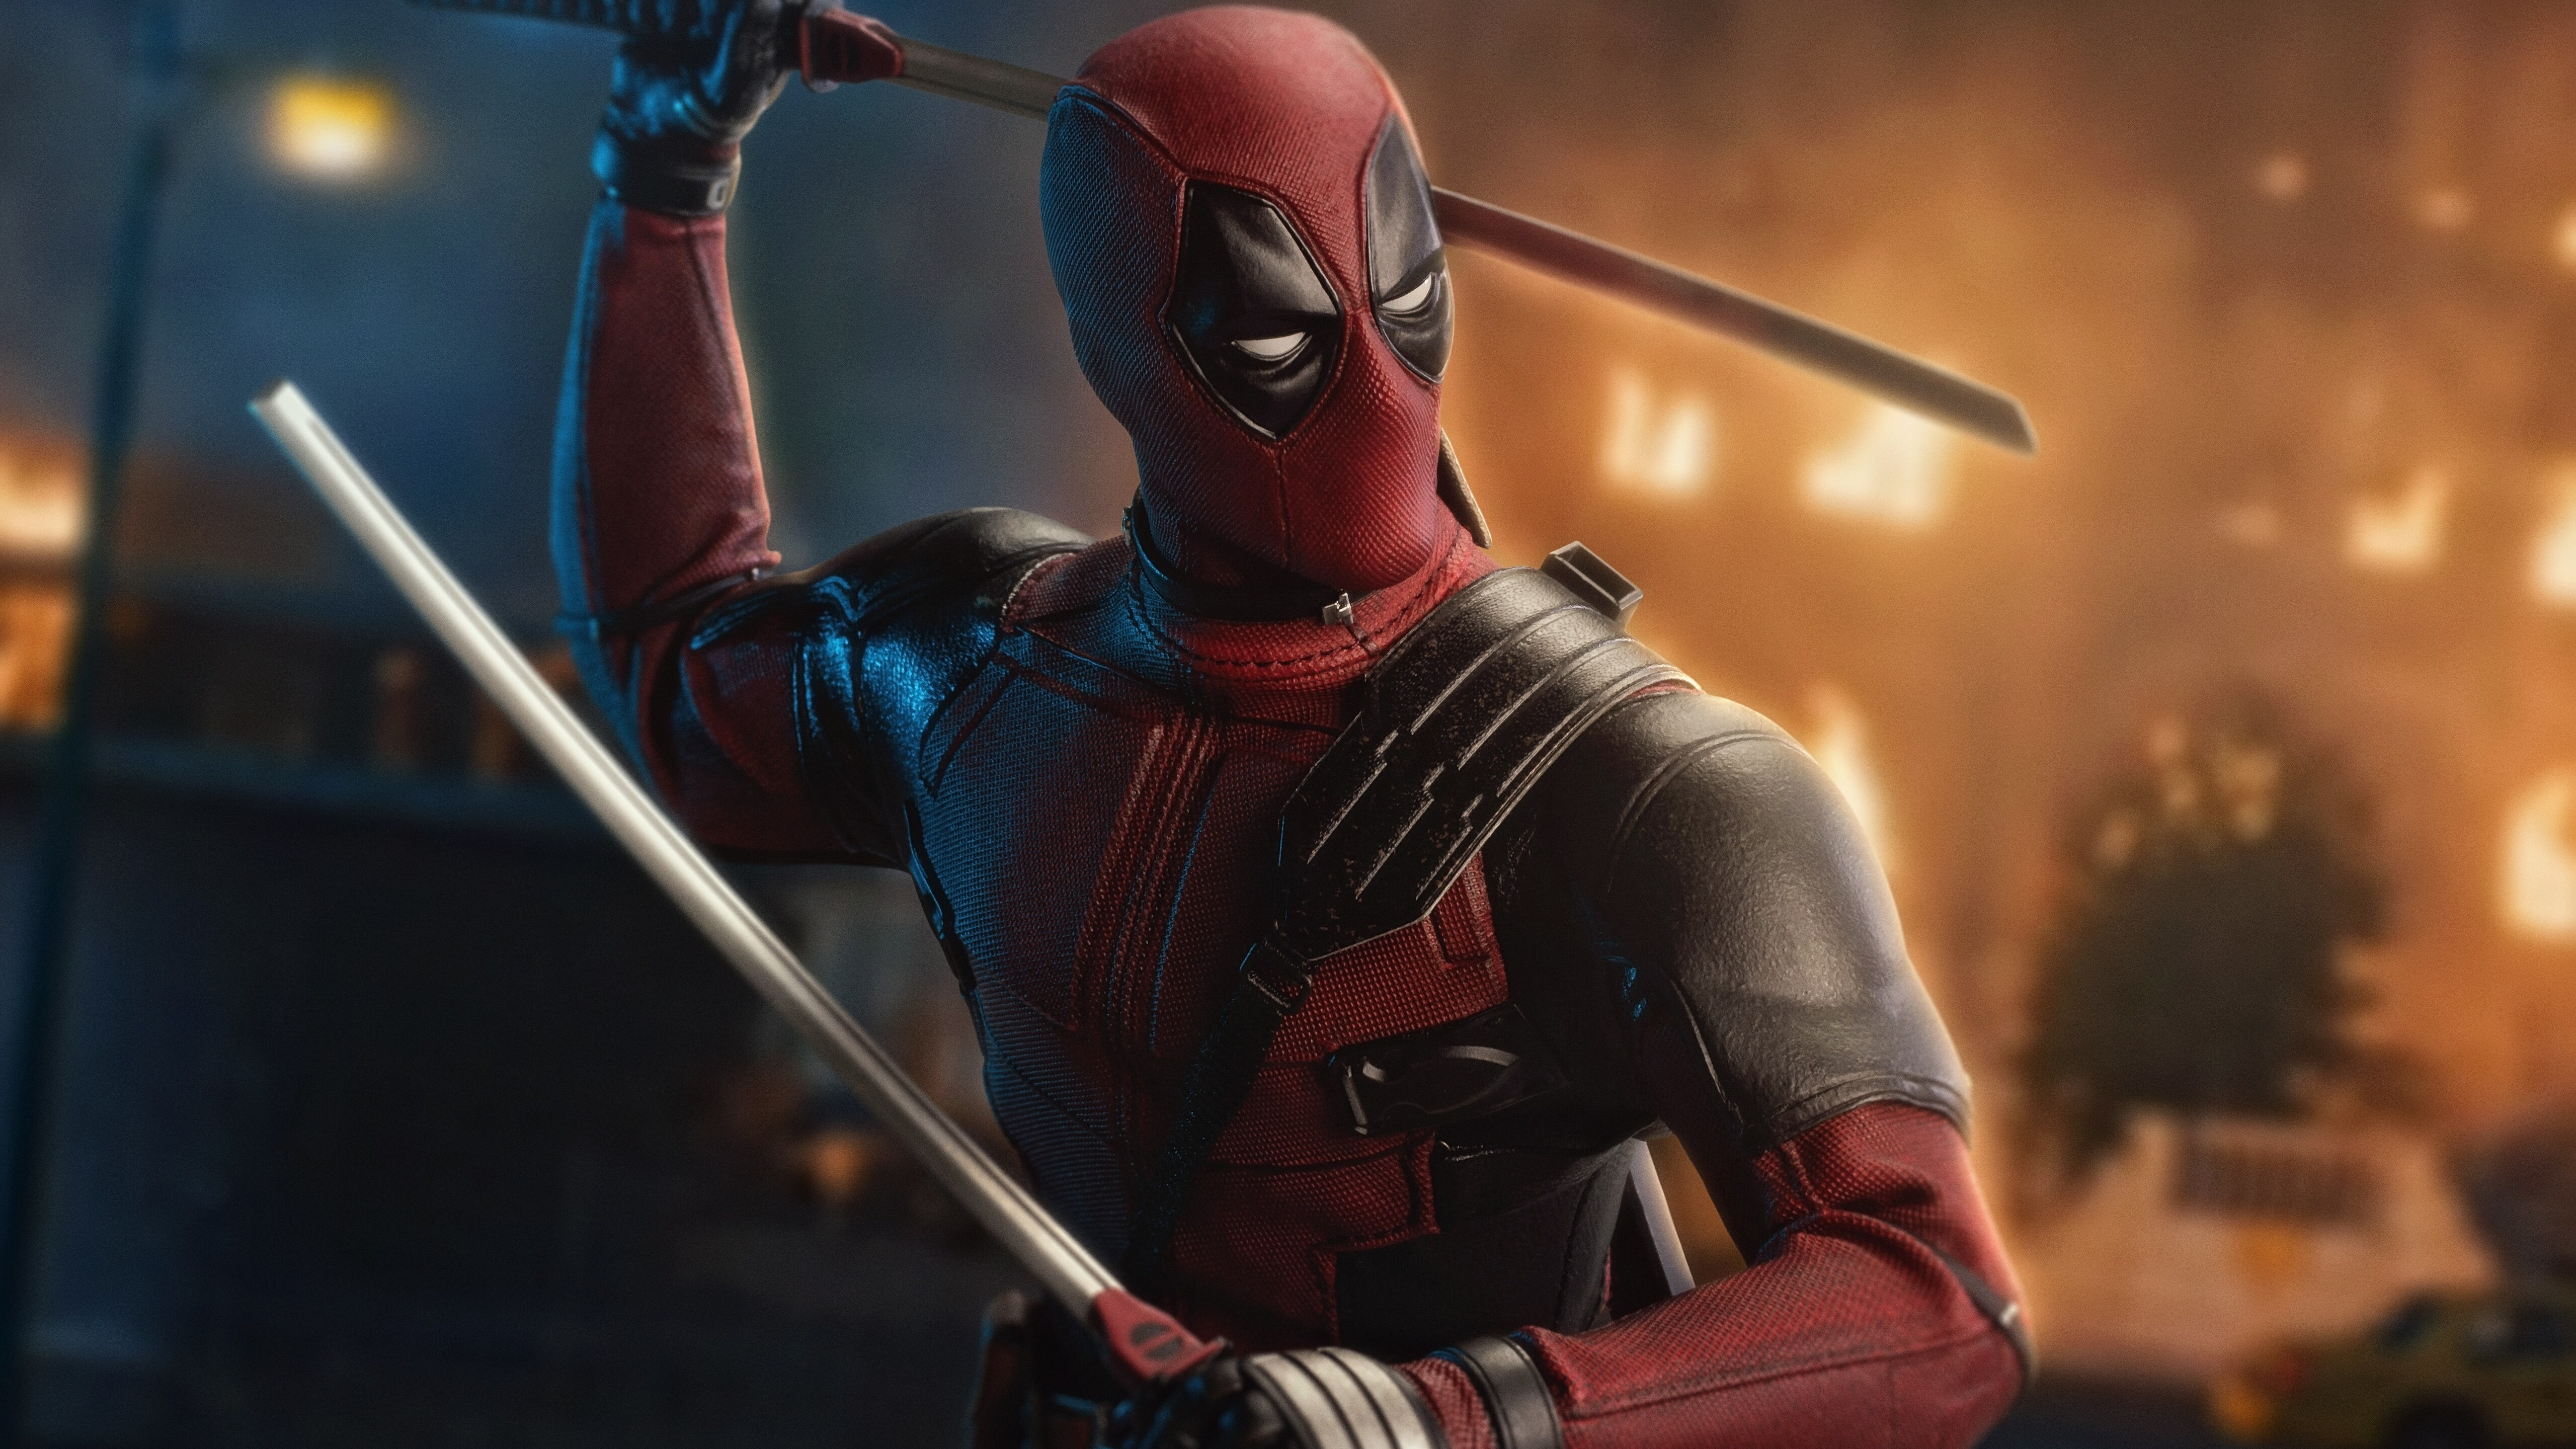 deadpool-2-artwork-5k-id.jpg